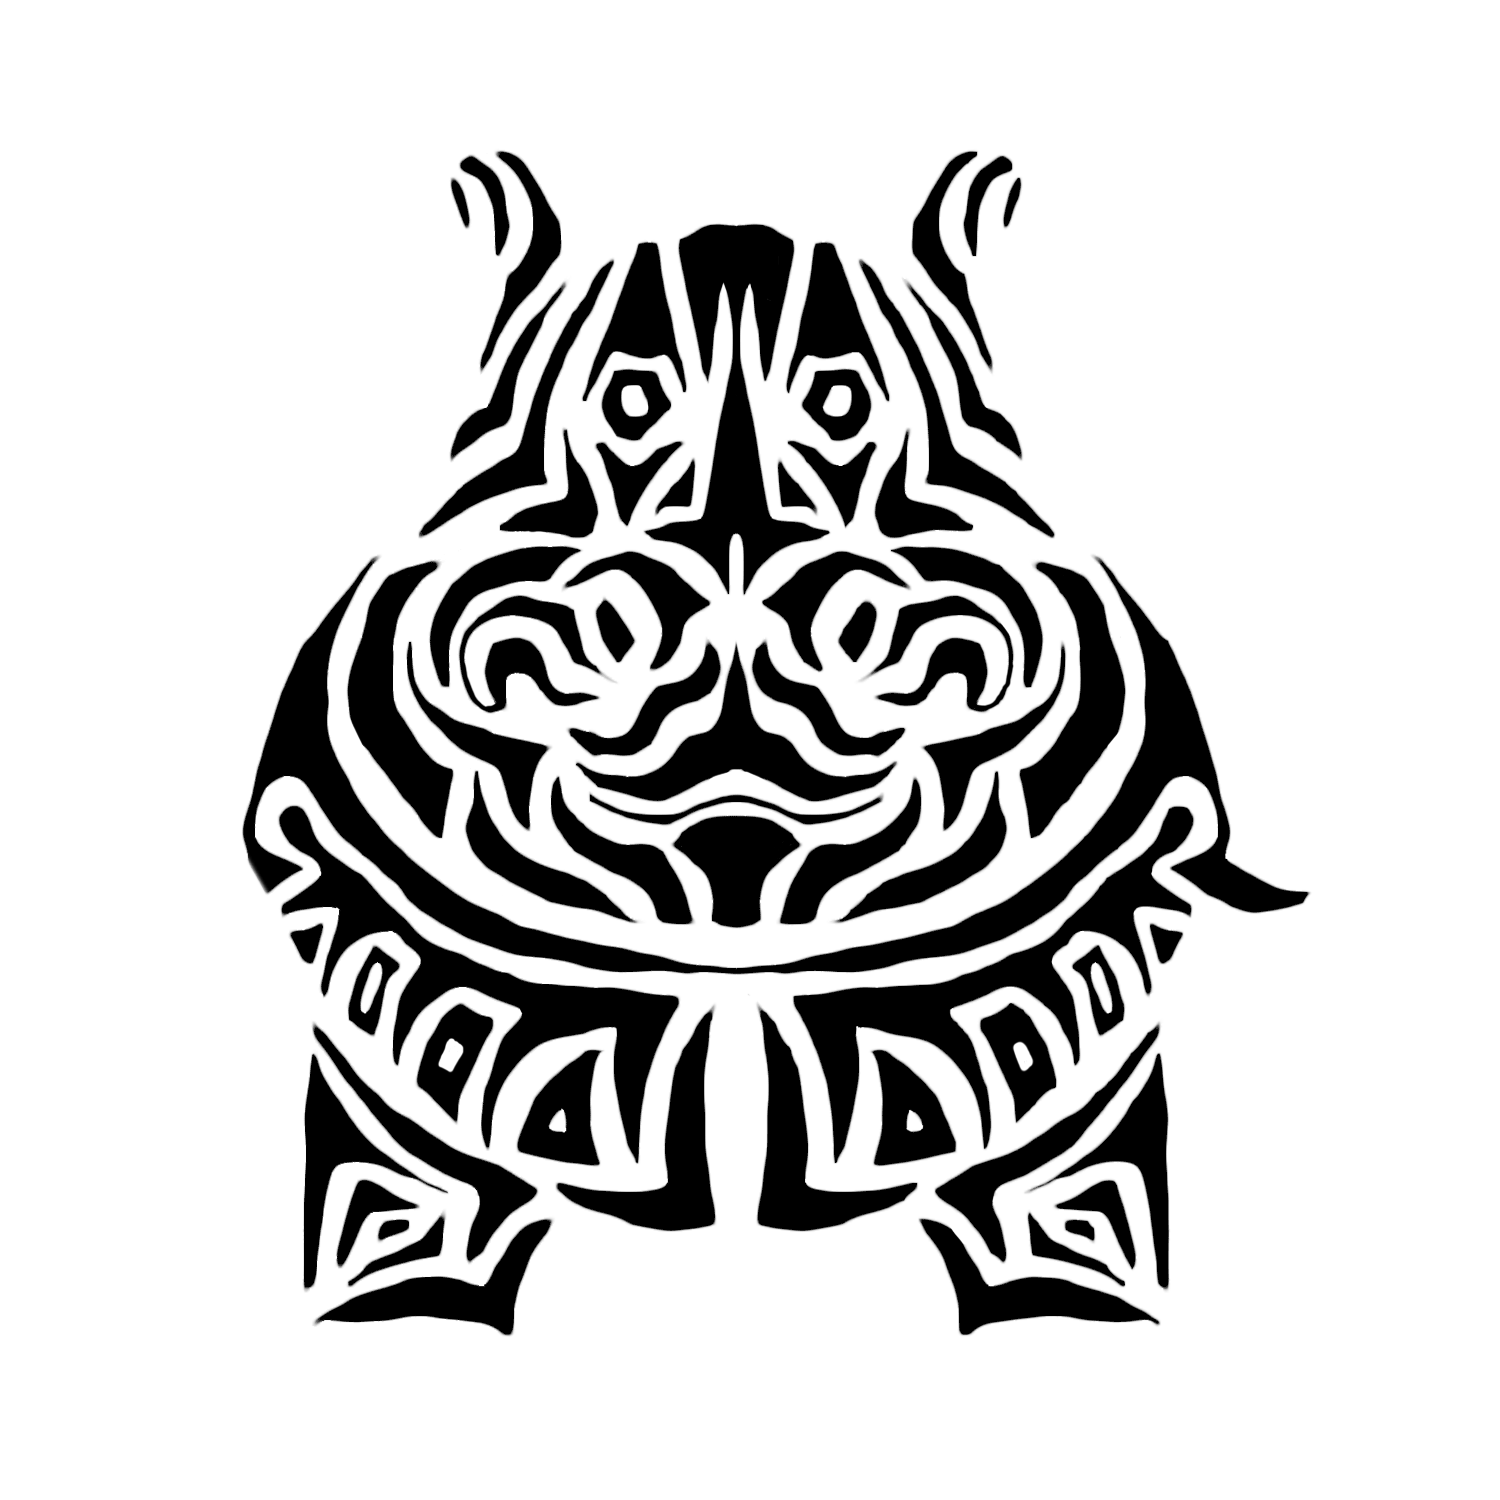 Hippo clipart drawn. This is our logo